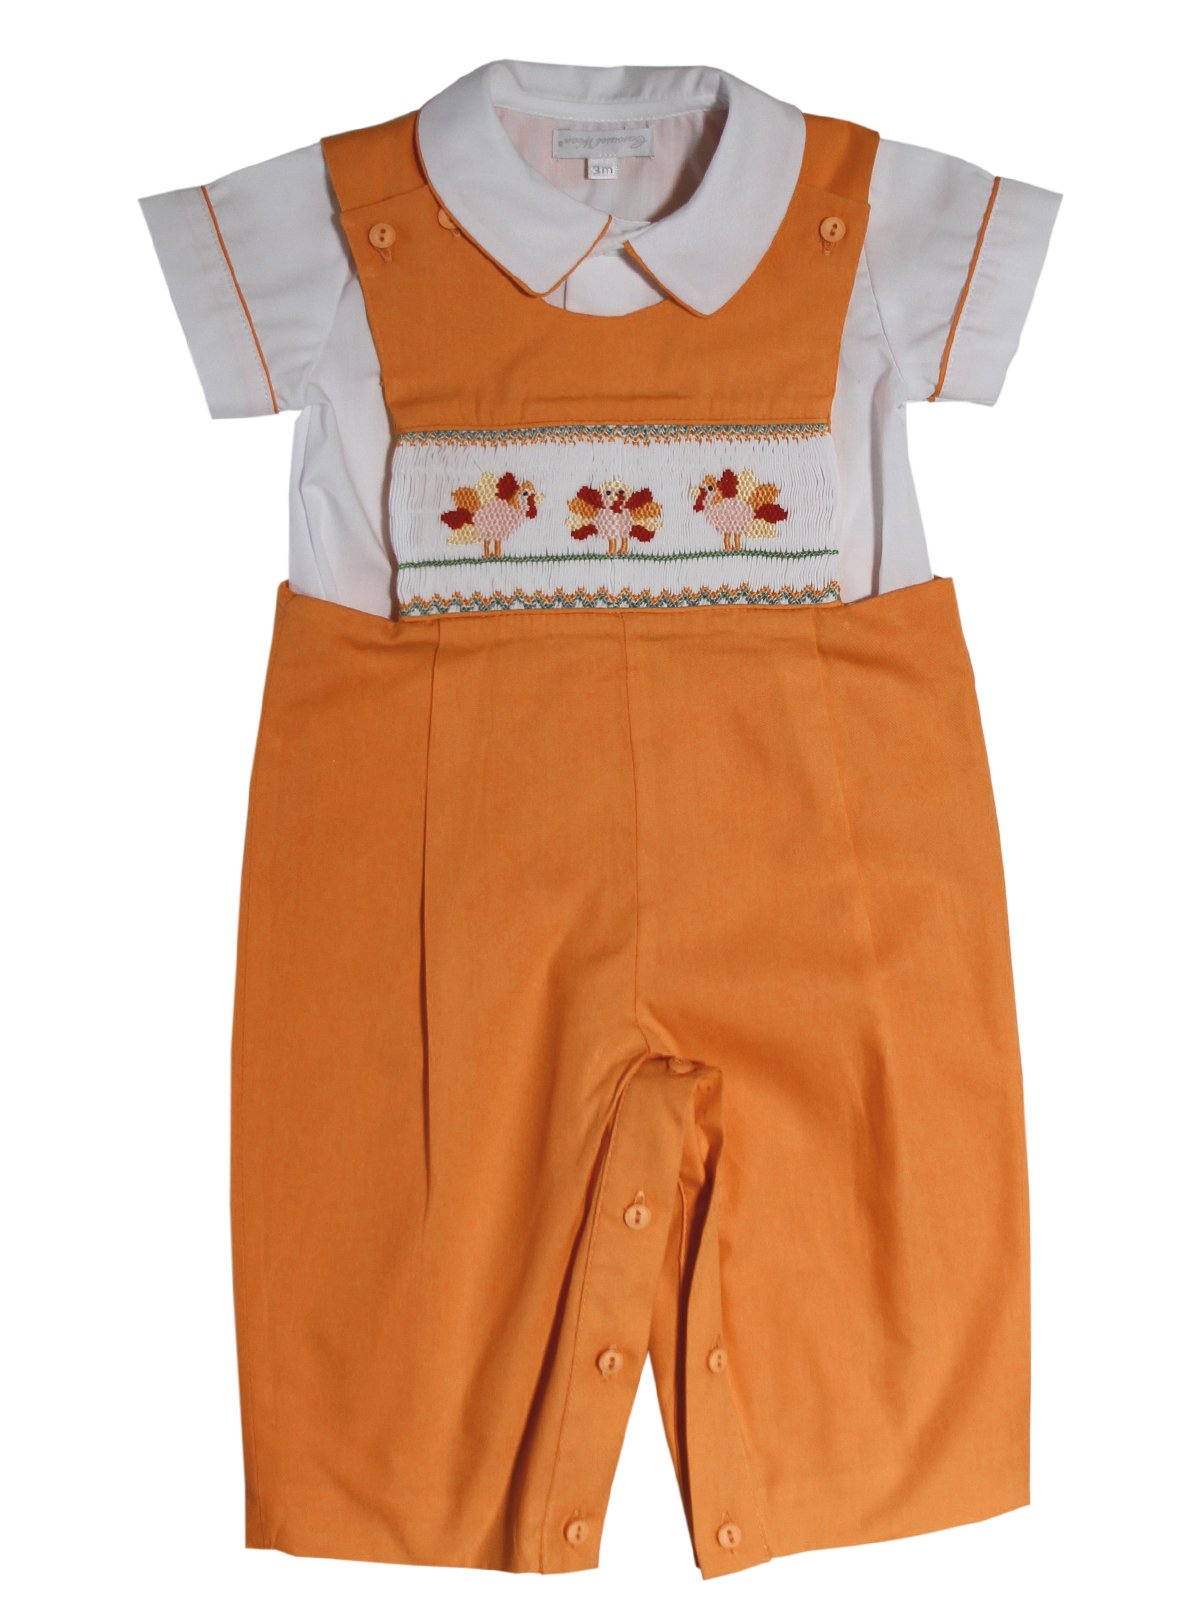 Carouselwear Boys Hand Smocked Thanksgiving Turkey Longall with Shirt